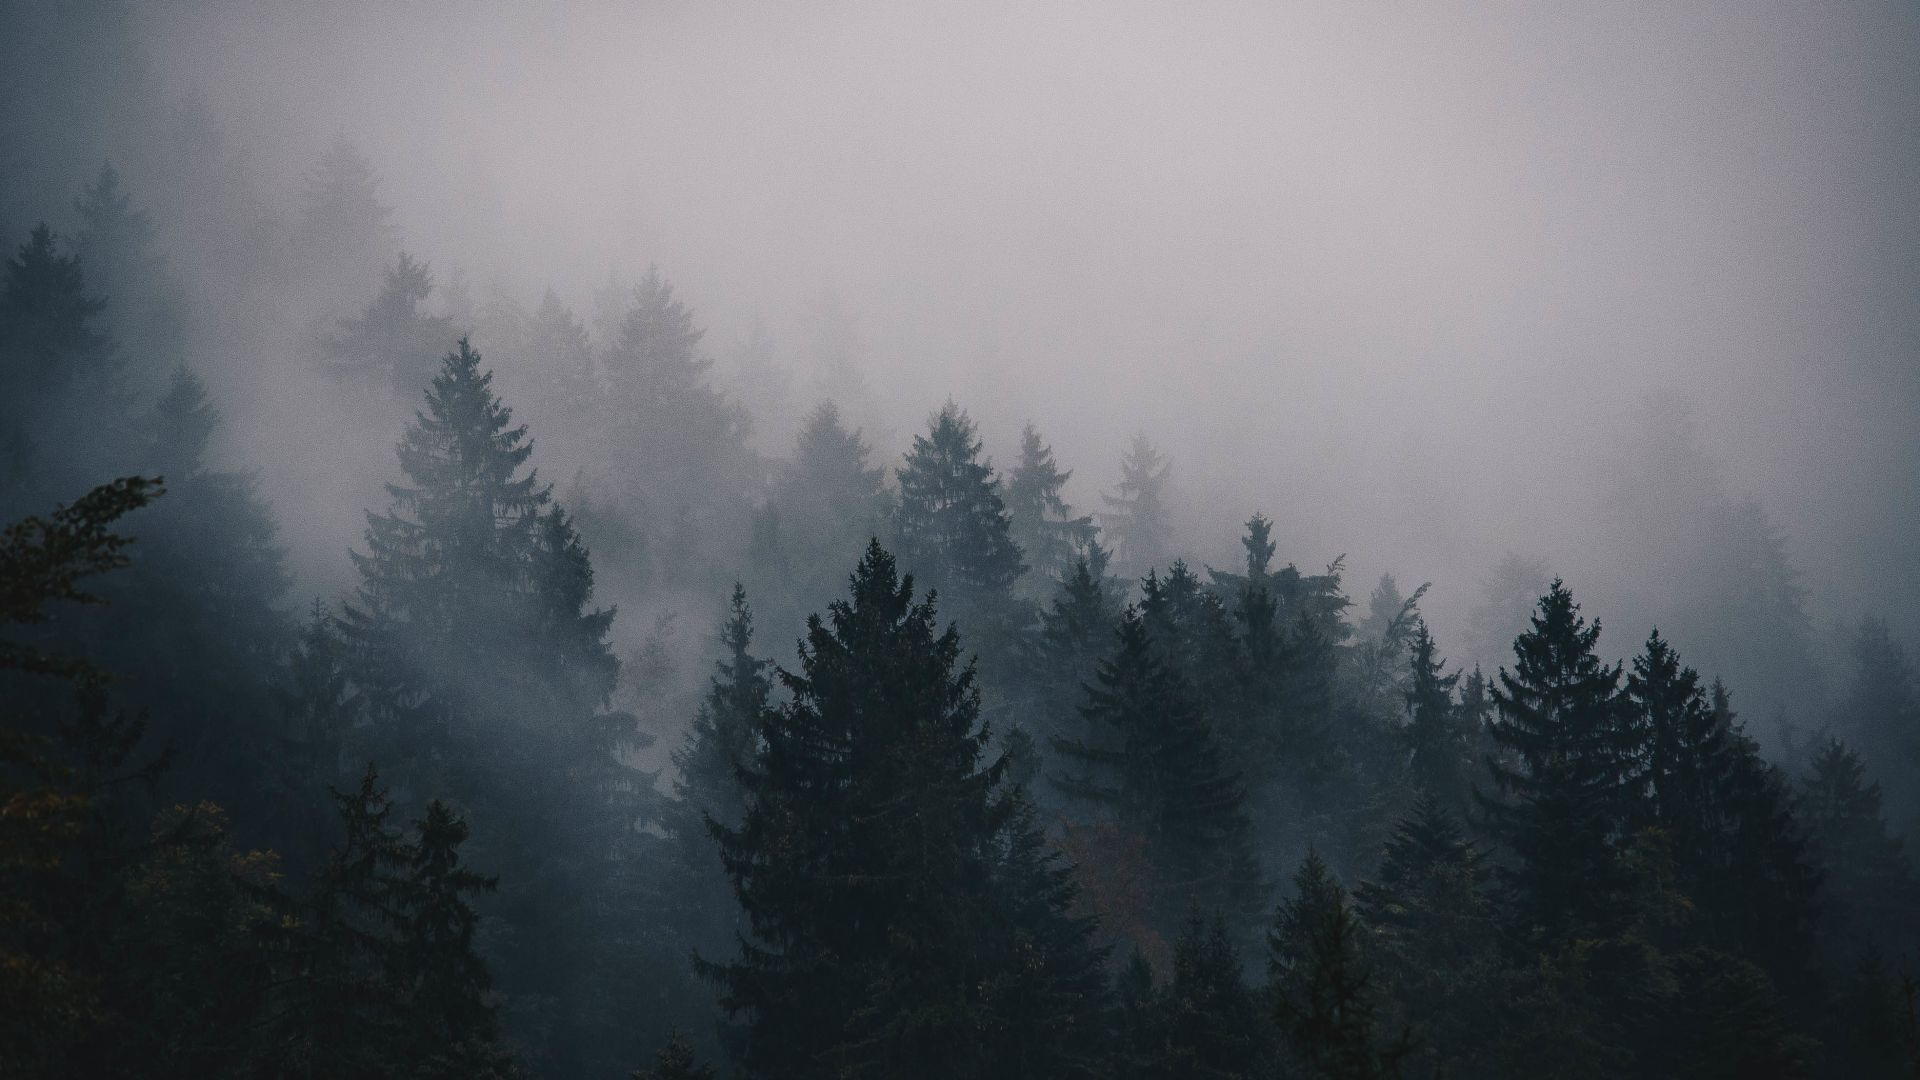 fog, trees, forest